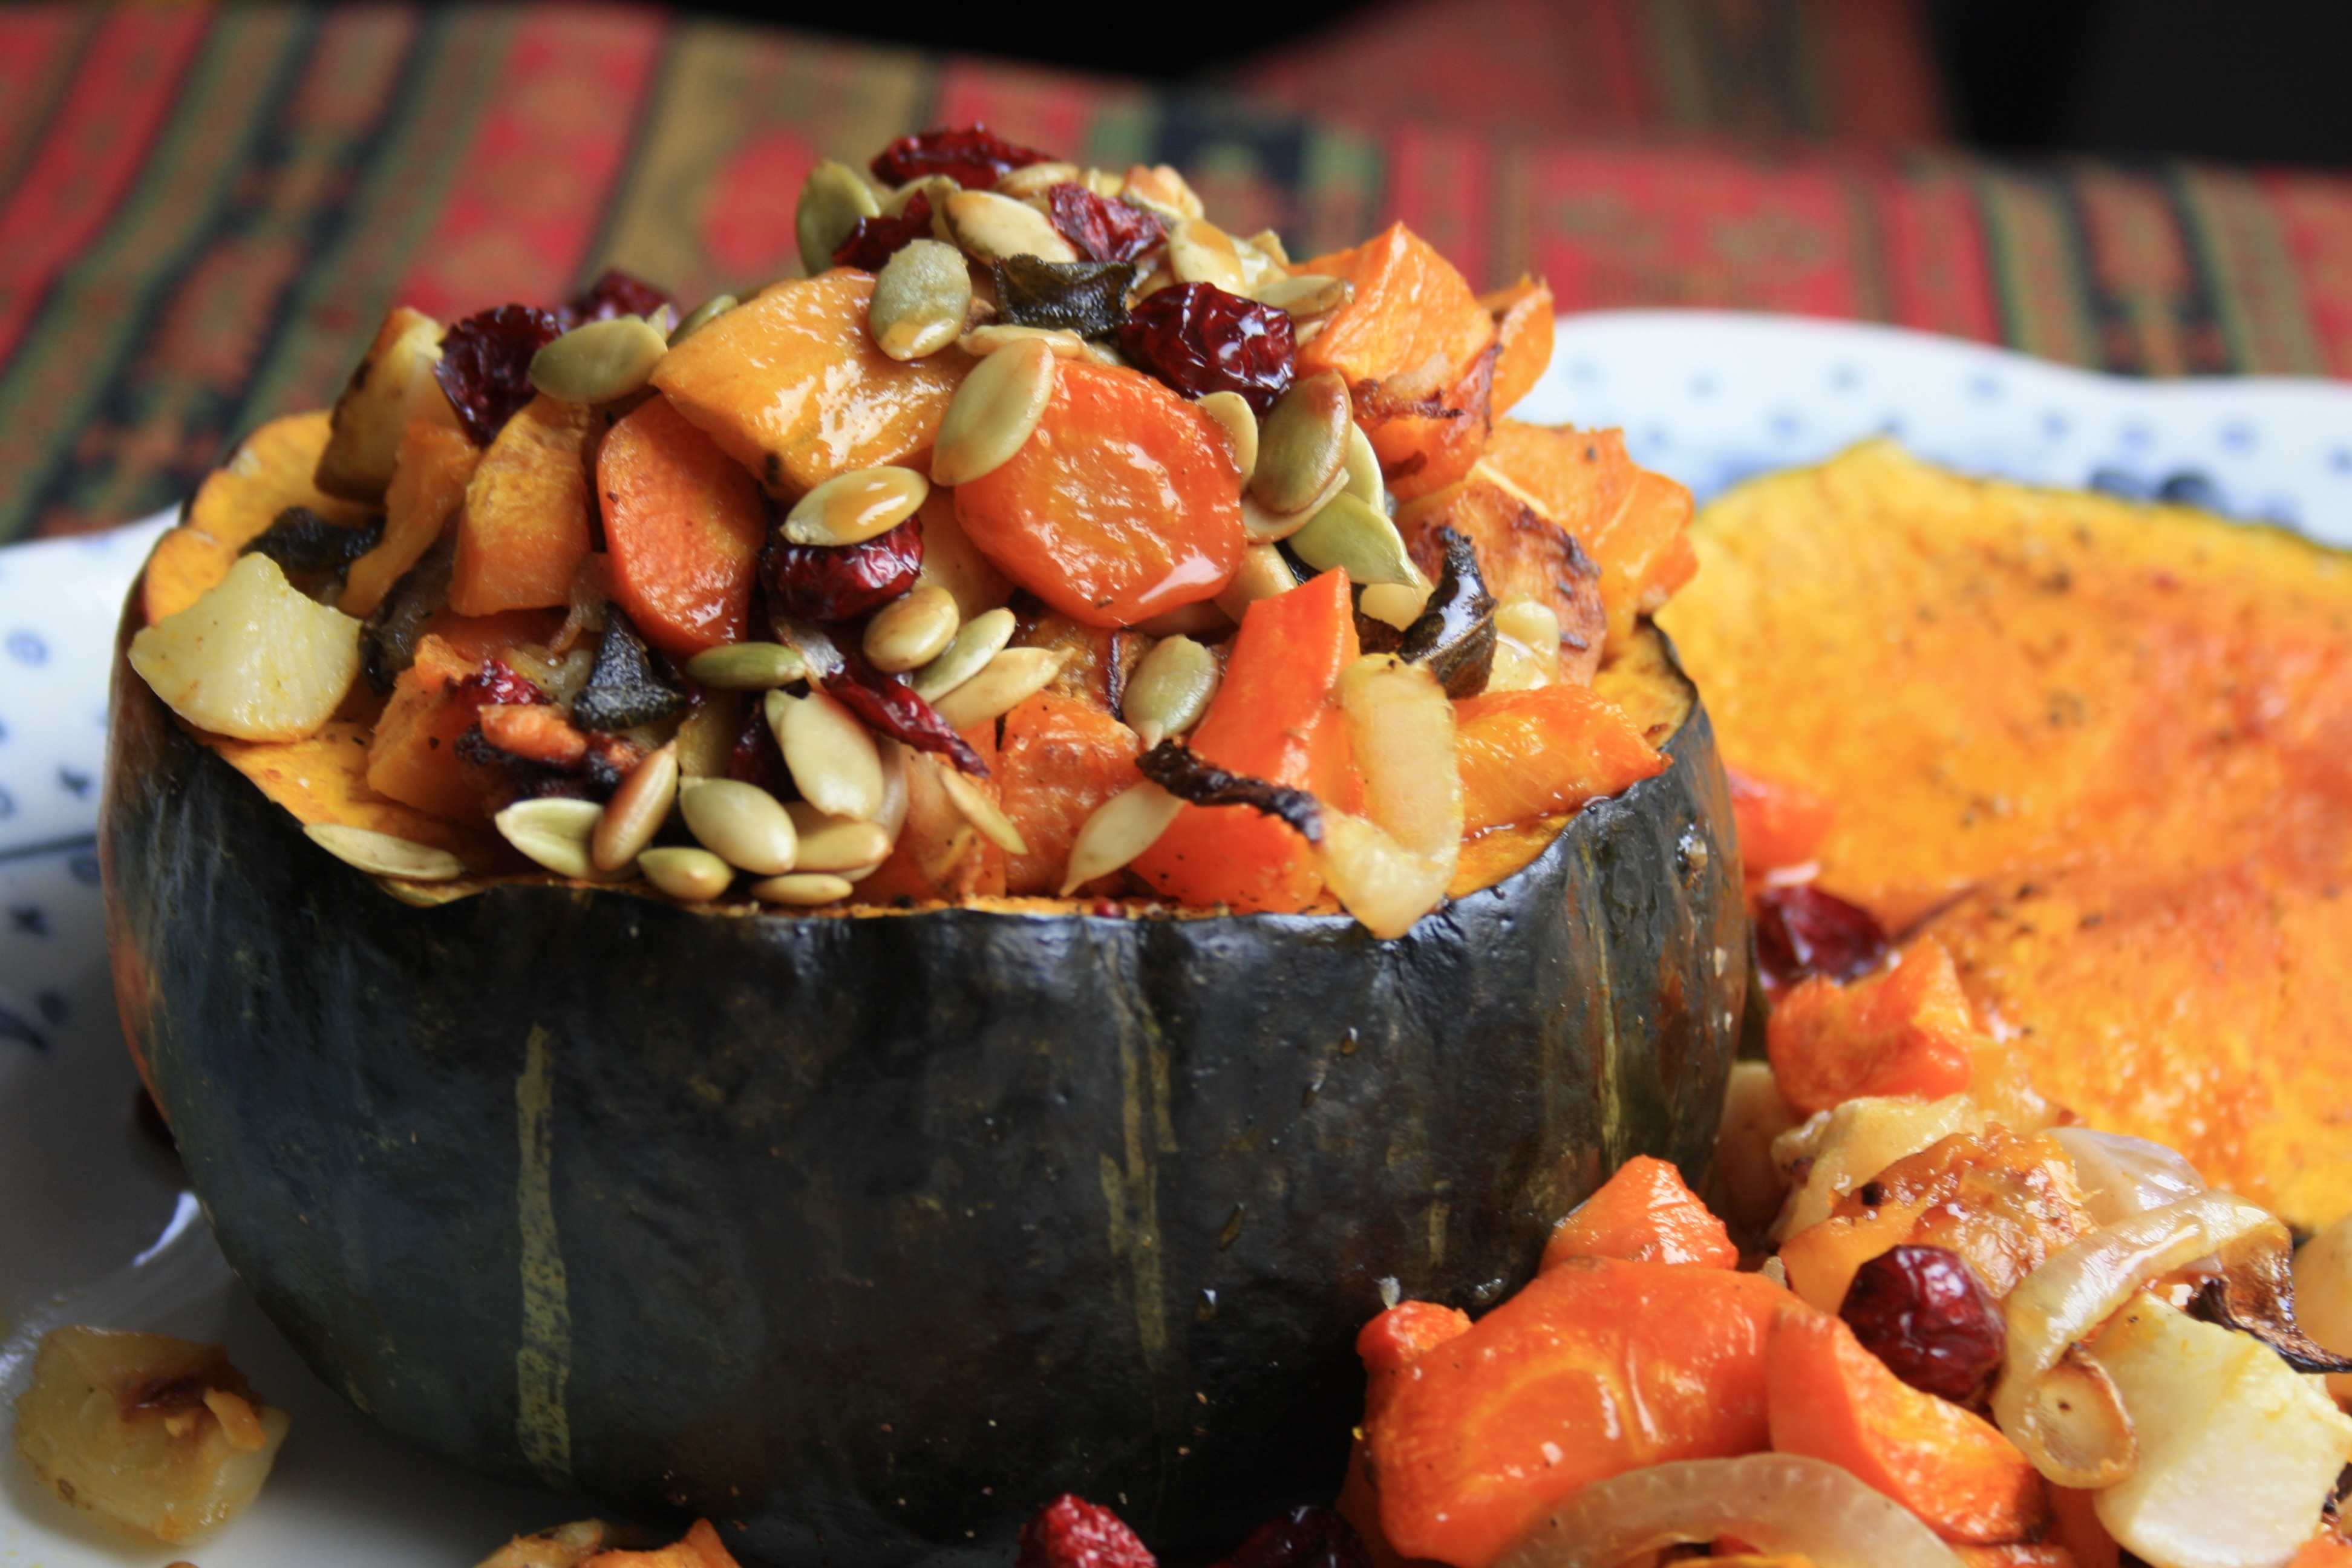 roasted root vegetables with molasses cider glaze